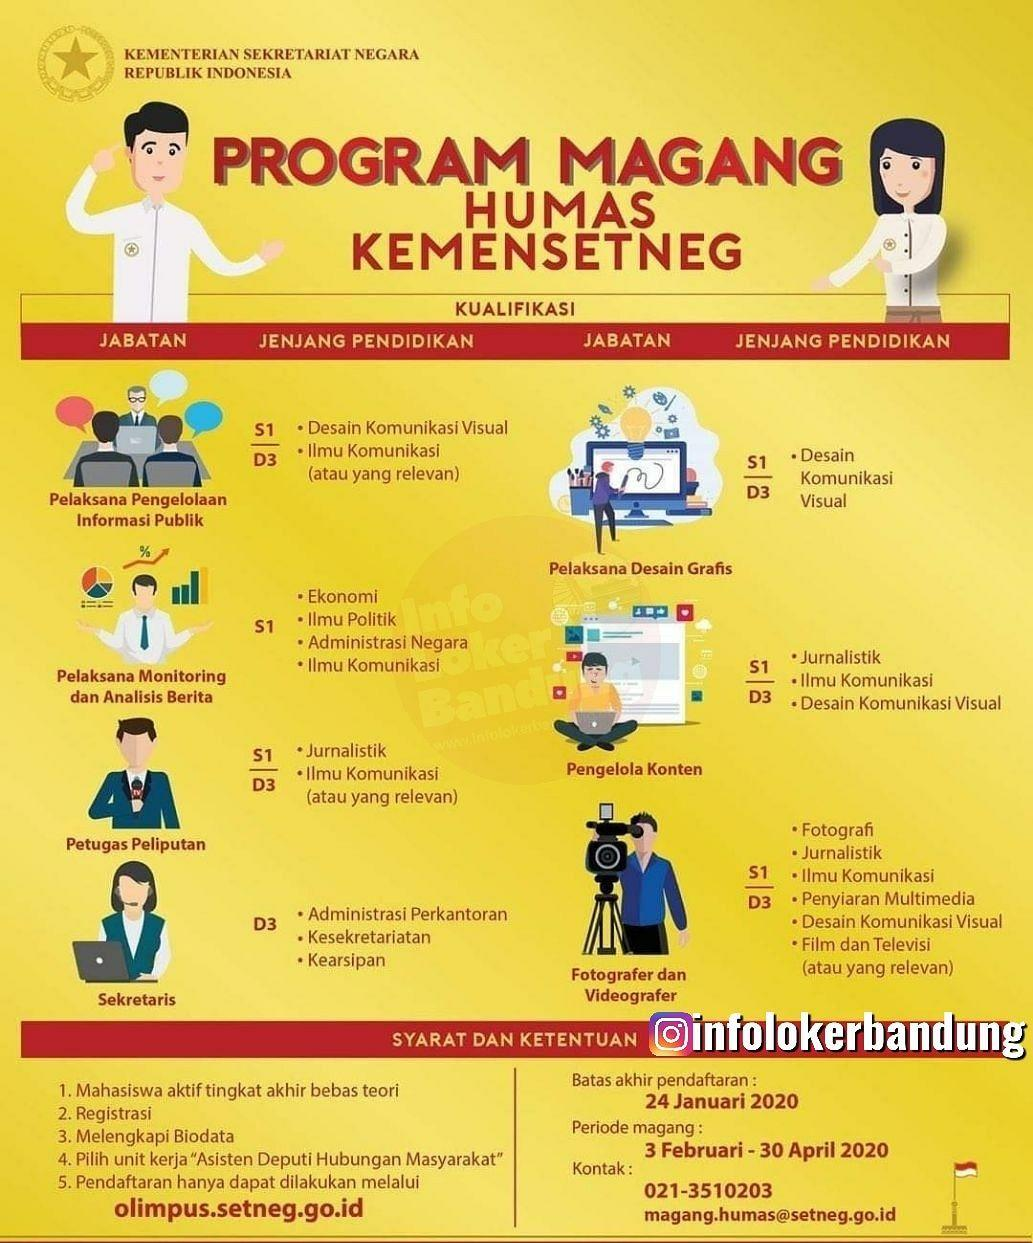 Program Magang Humas Kemensetneg Januari 2020